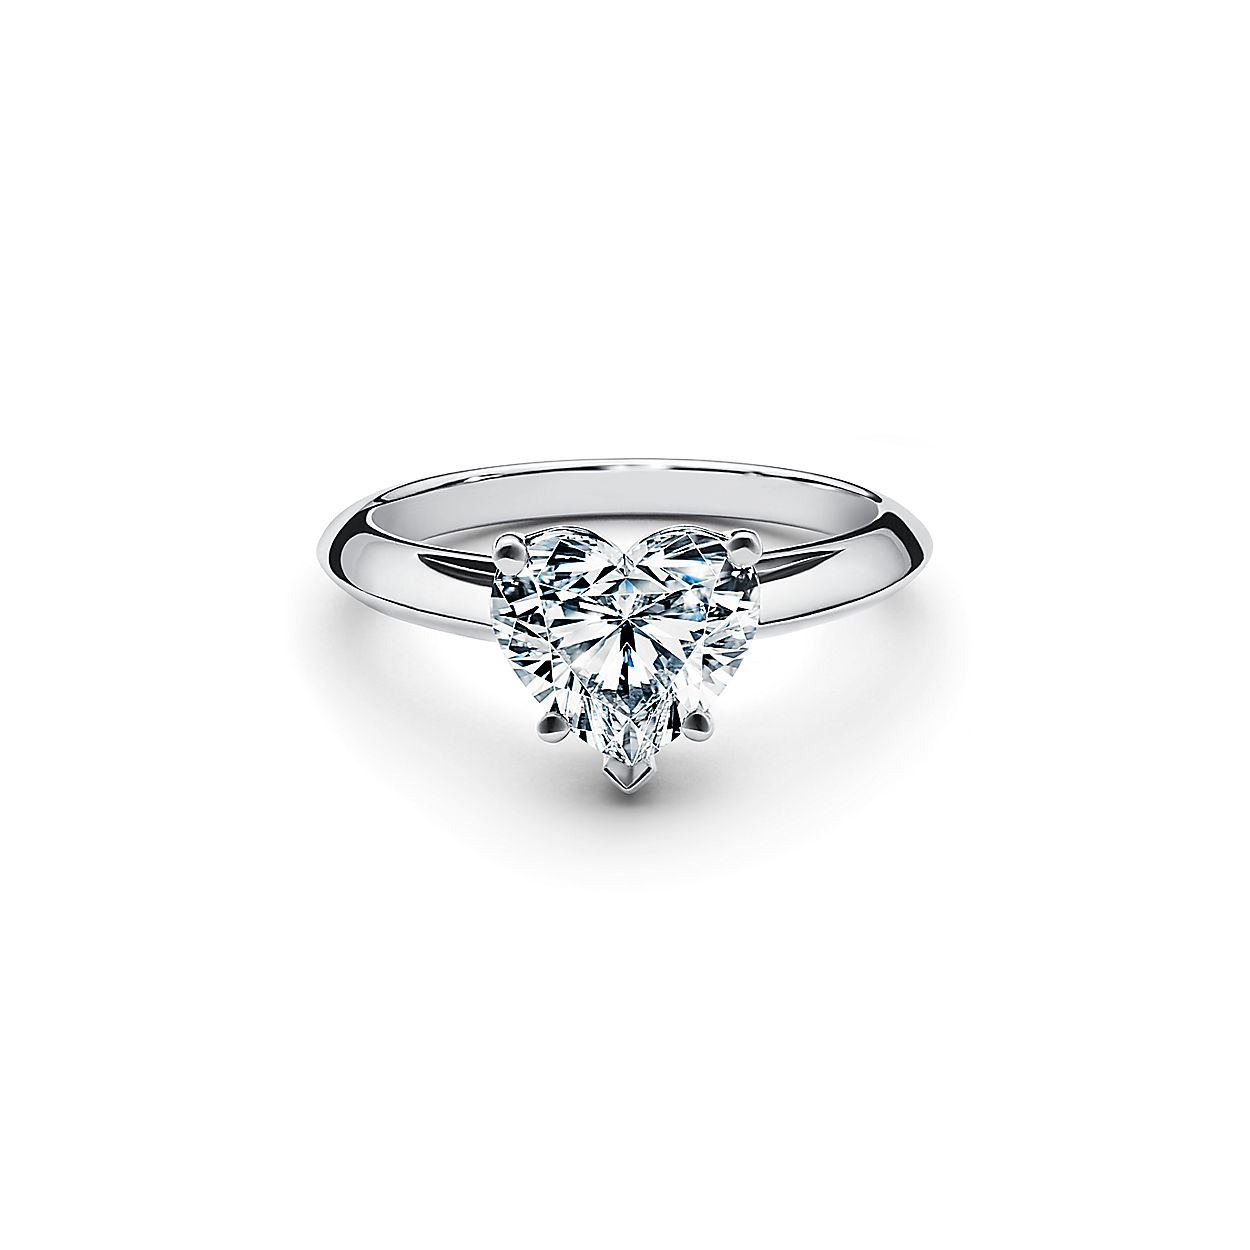 1e3a4286c0199 Heart-shaped Diamond Engagement Ring in Platinum